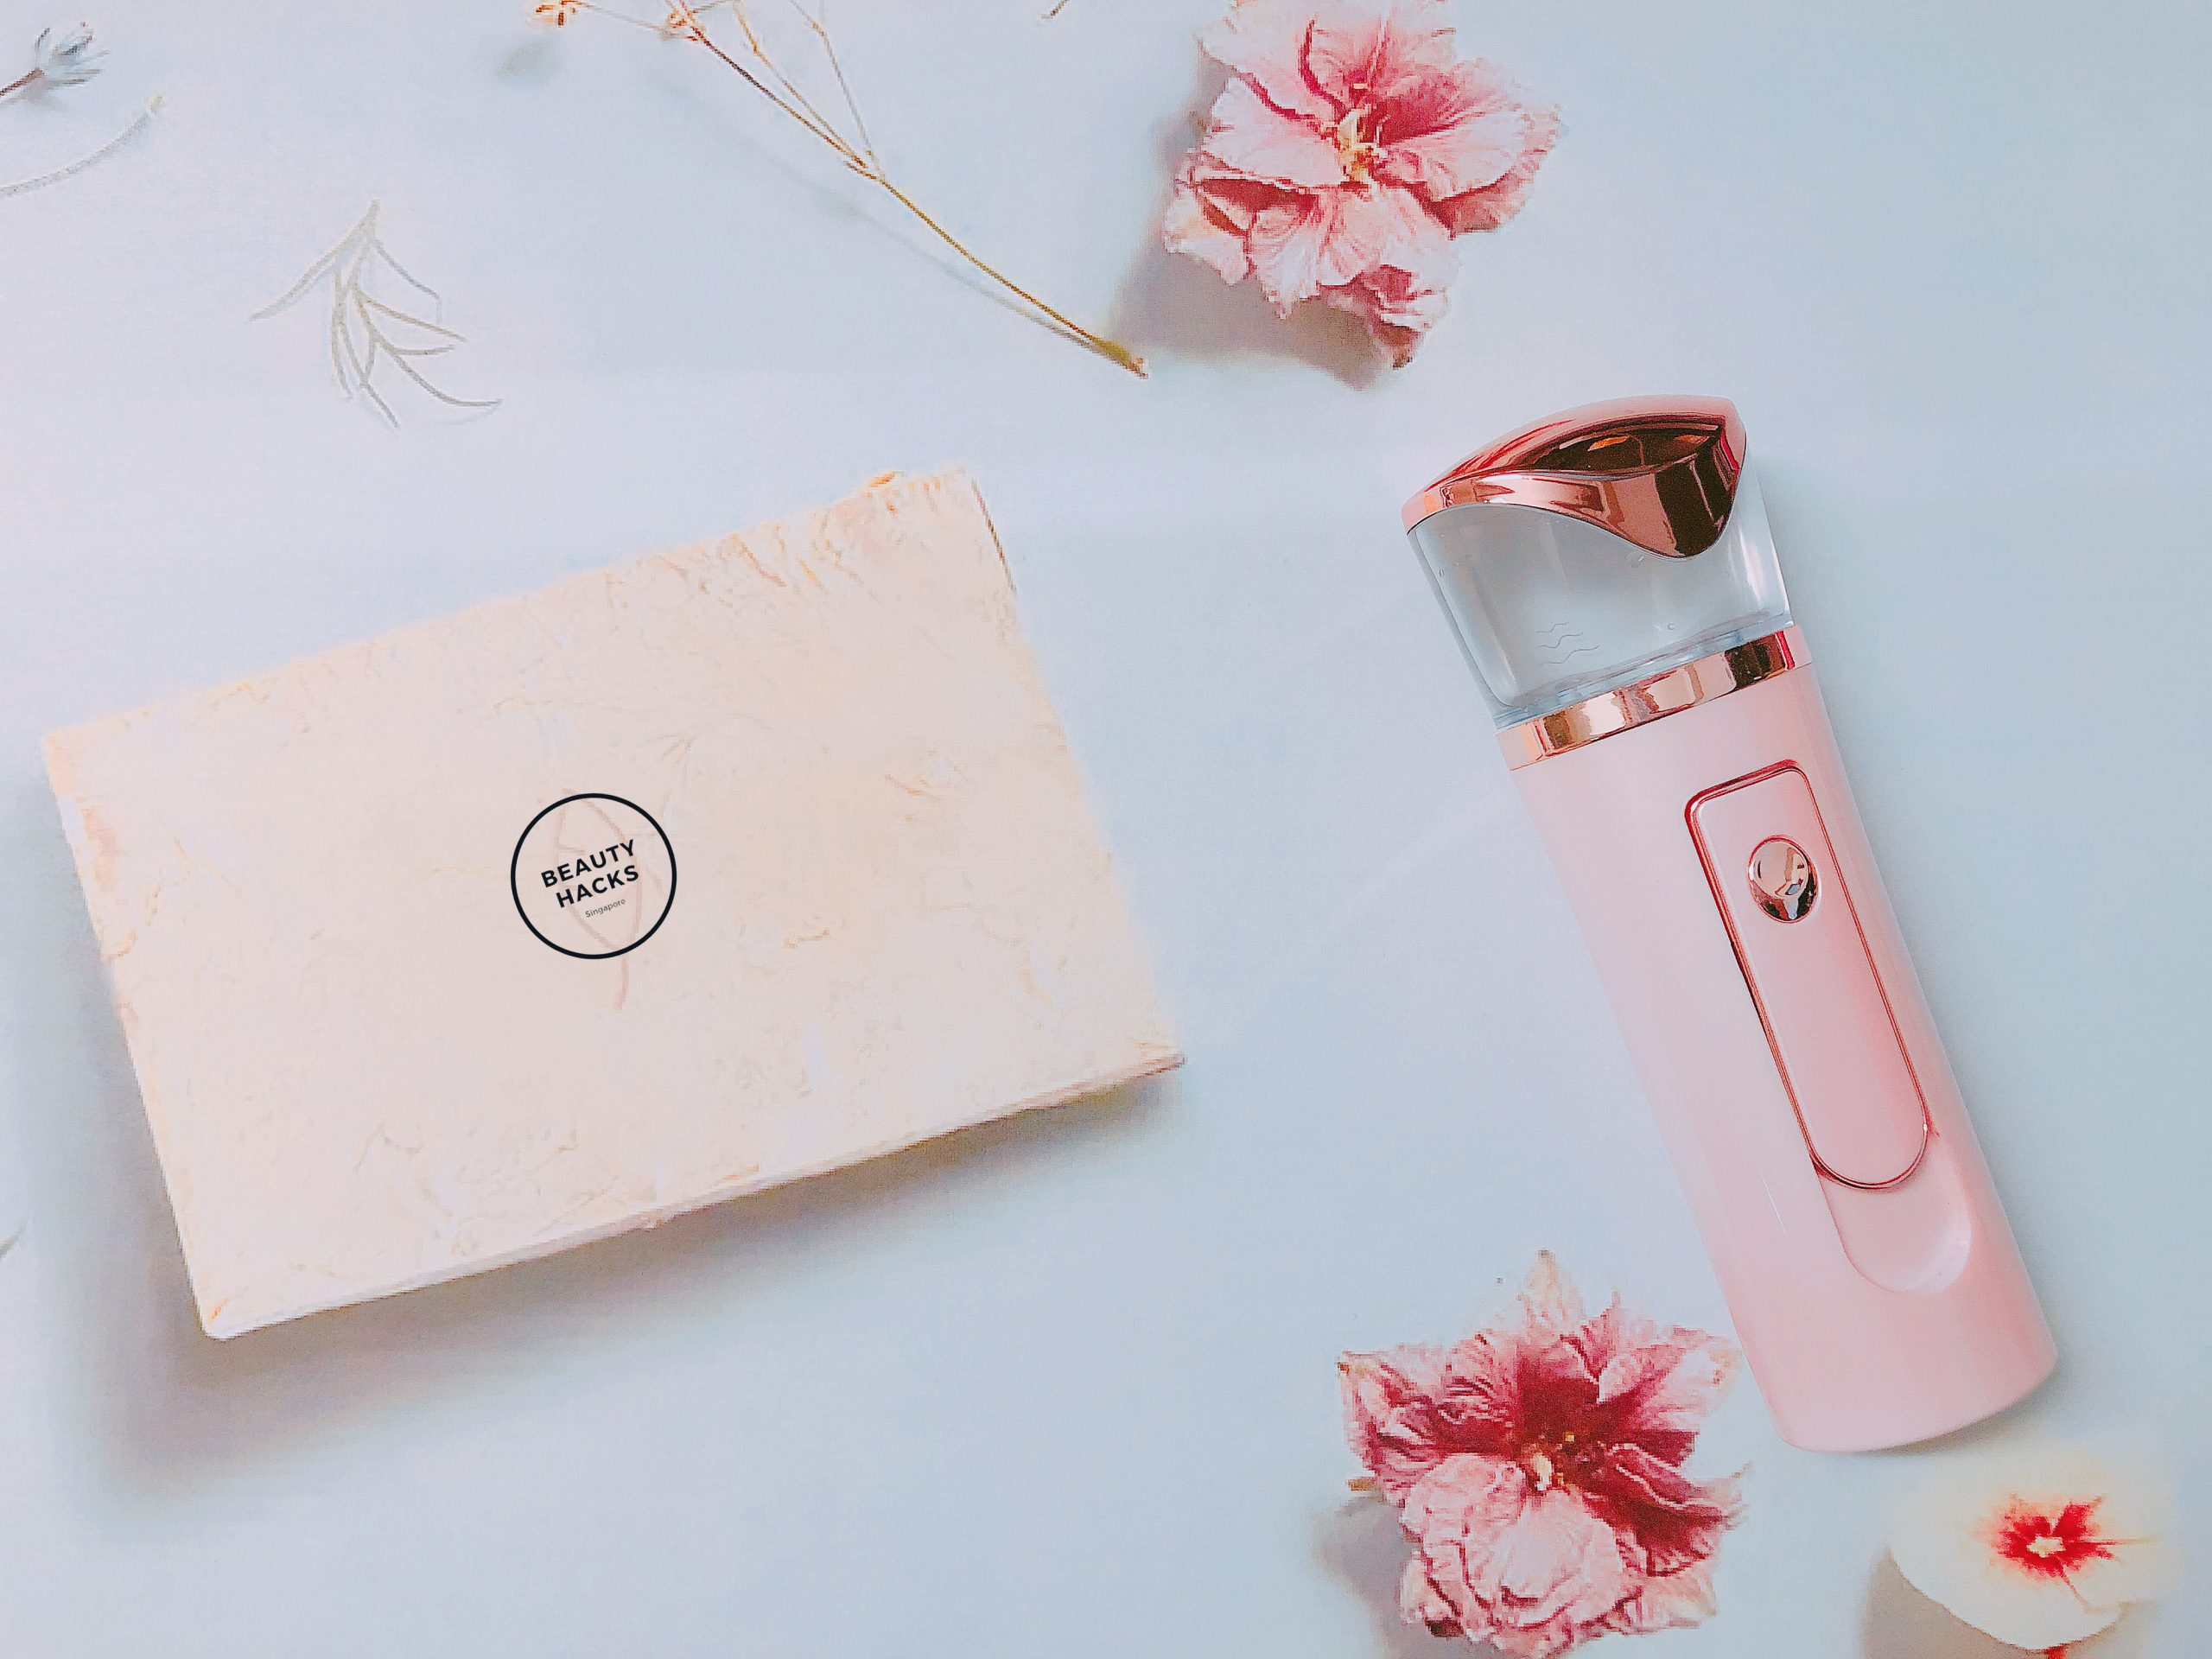 Beauty Hacks launches in Singapore with Fuss-Free Beauty Tools and Accessories